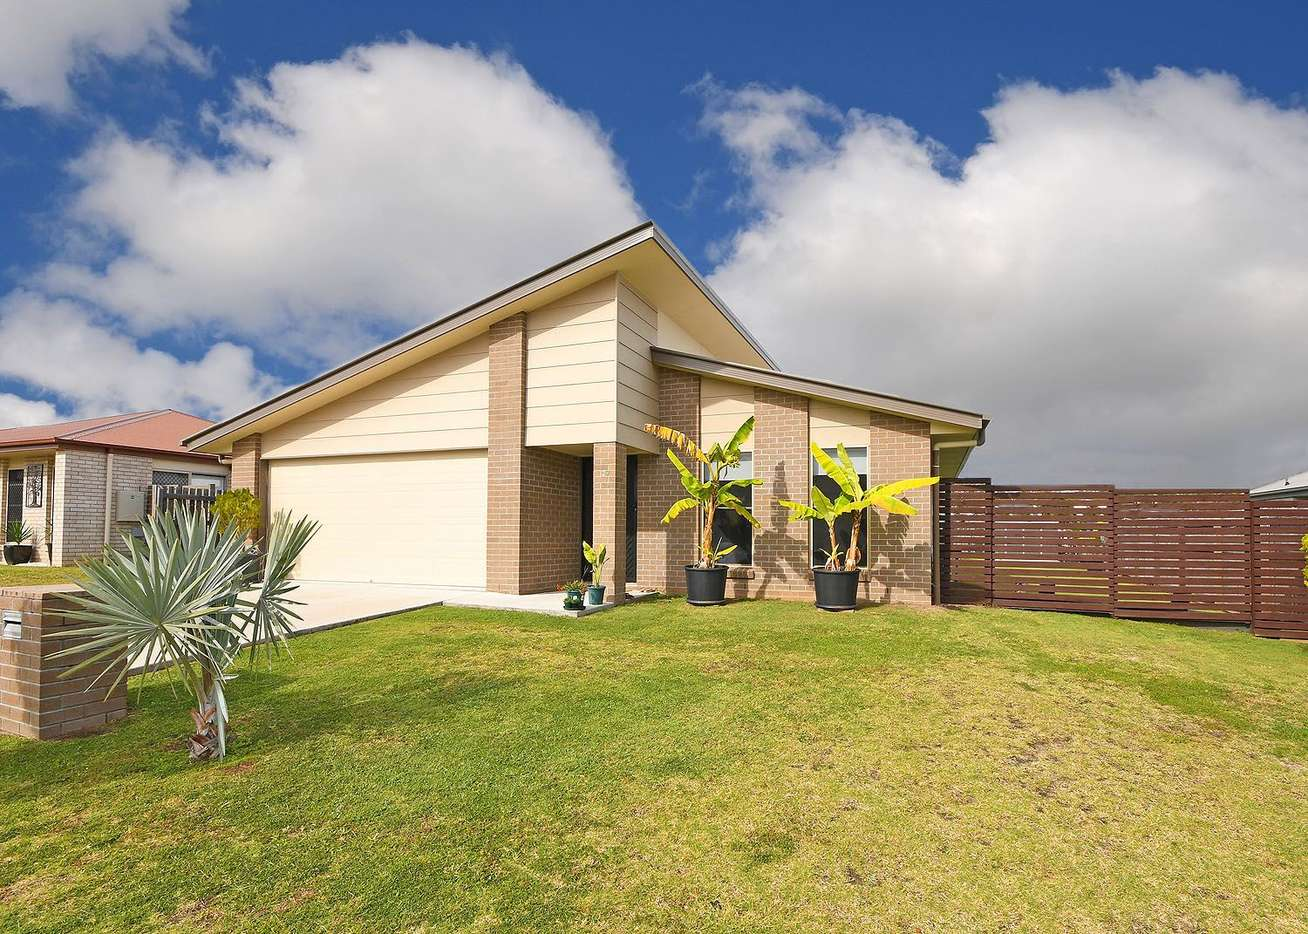 Main view of Homely house listing, 27 Tranquil Drive, Wondunna, QLD 4655